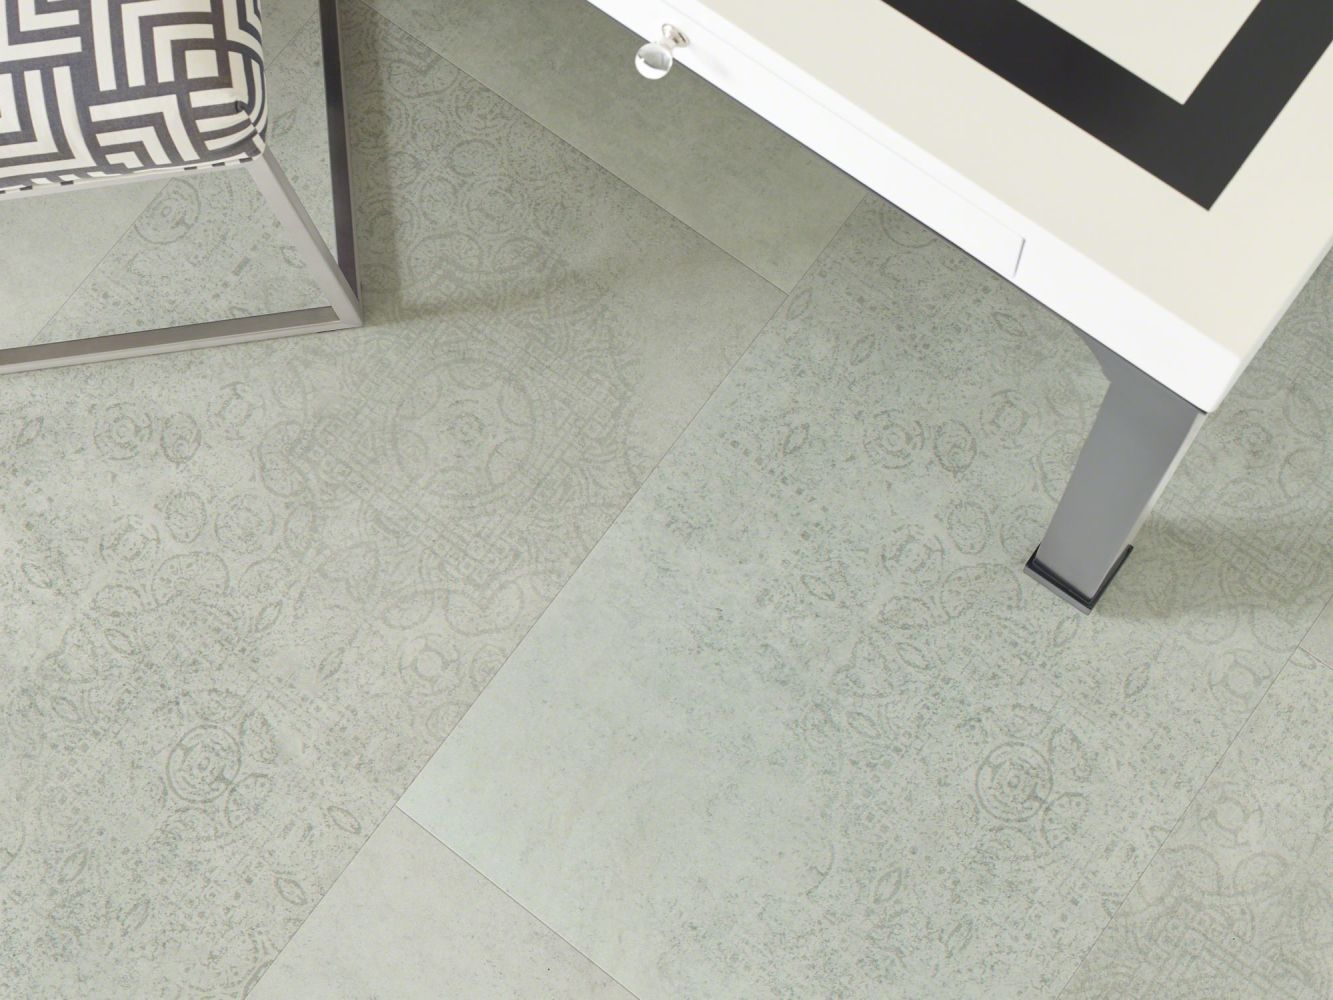 Shaw Floors Resilient Residential Set In Stone 720c Plus Cascade 00597_0834V